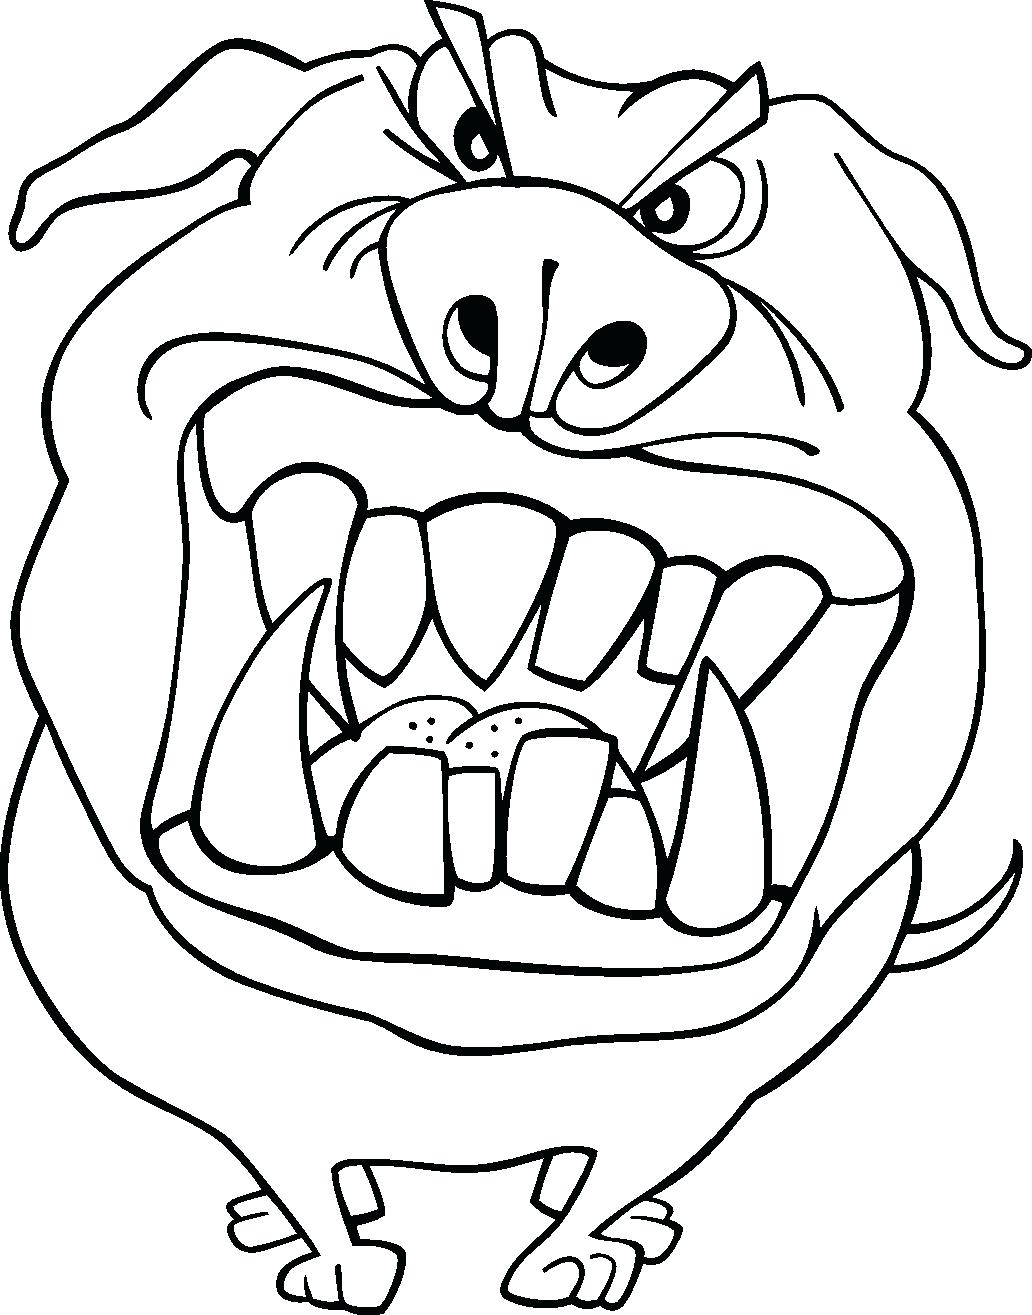 silly monster printable coloring pages - photo#29